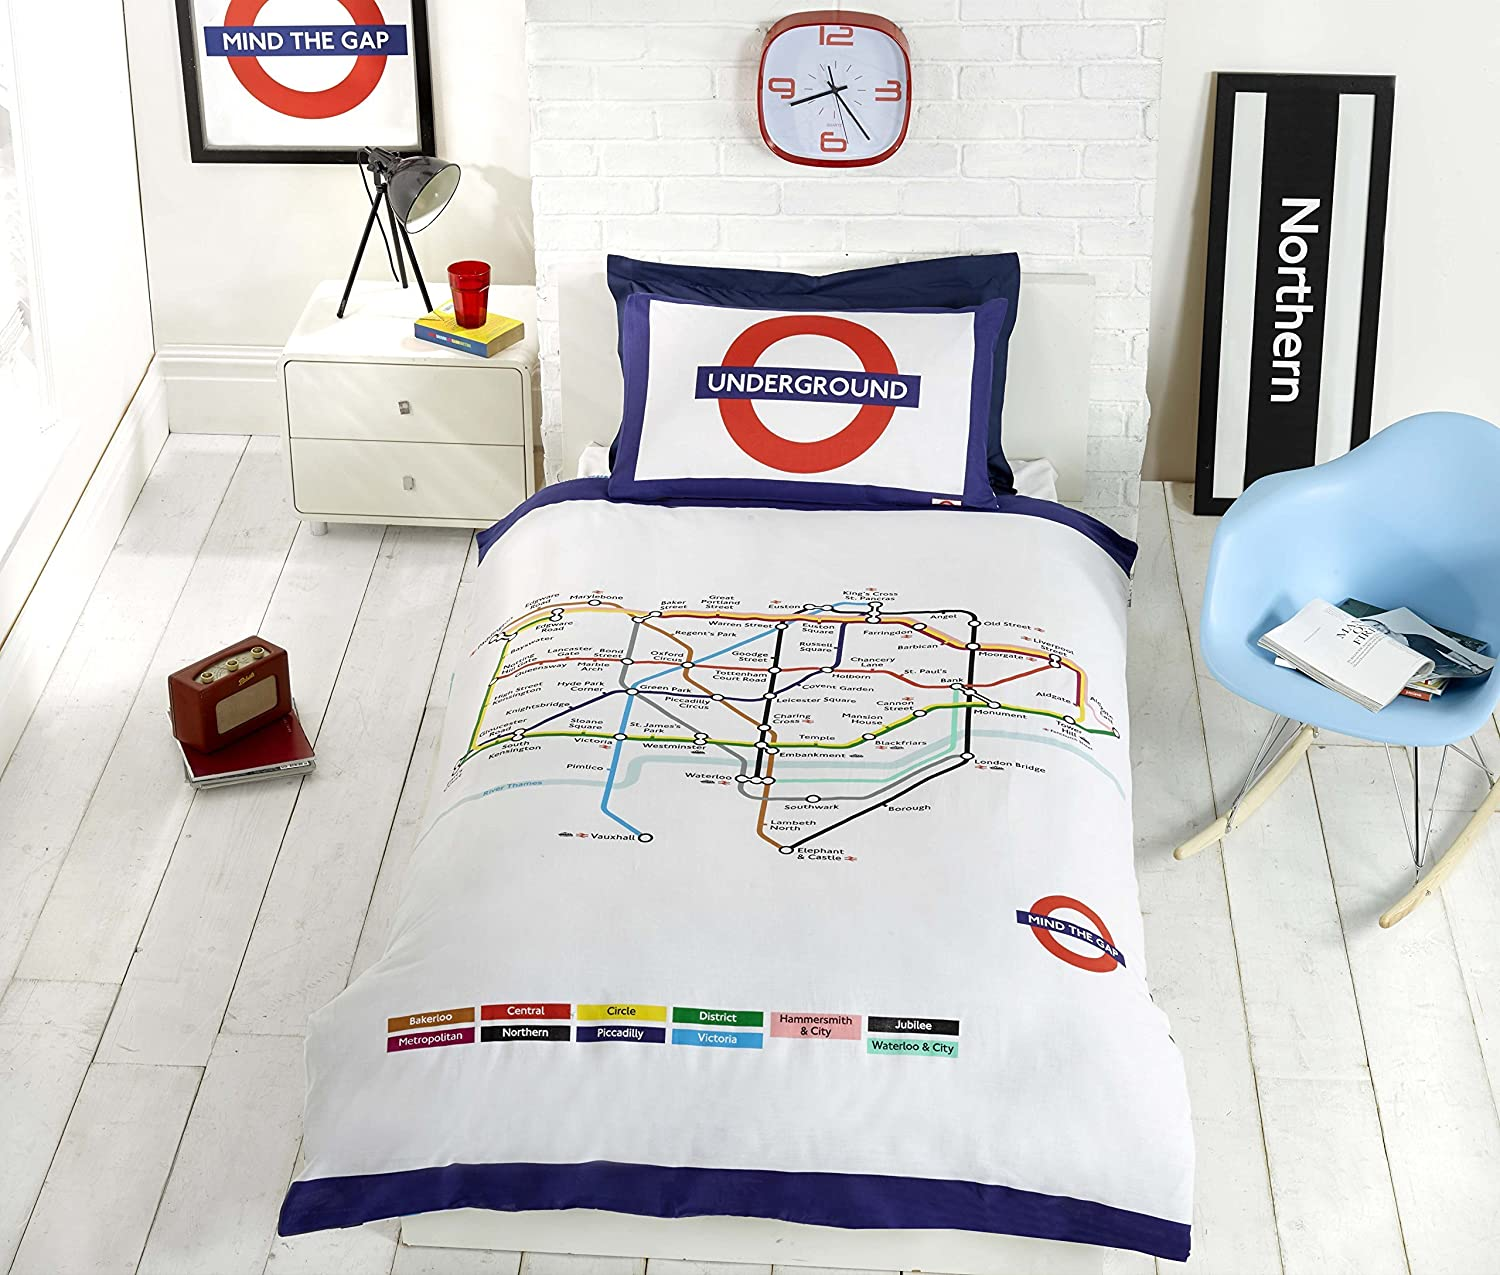 Underground london undgerground tube duvet cover and pillowcases underground london undgerground tube duvet cover and pillowcases bedding bed set single white amazon kitchen home gumiabroncs Gallery